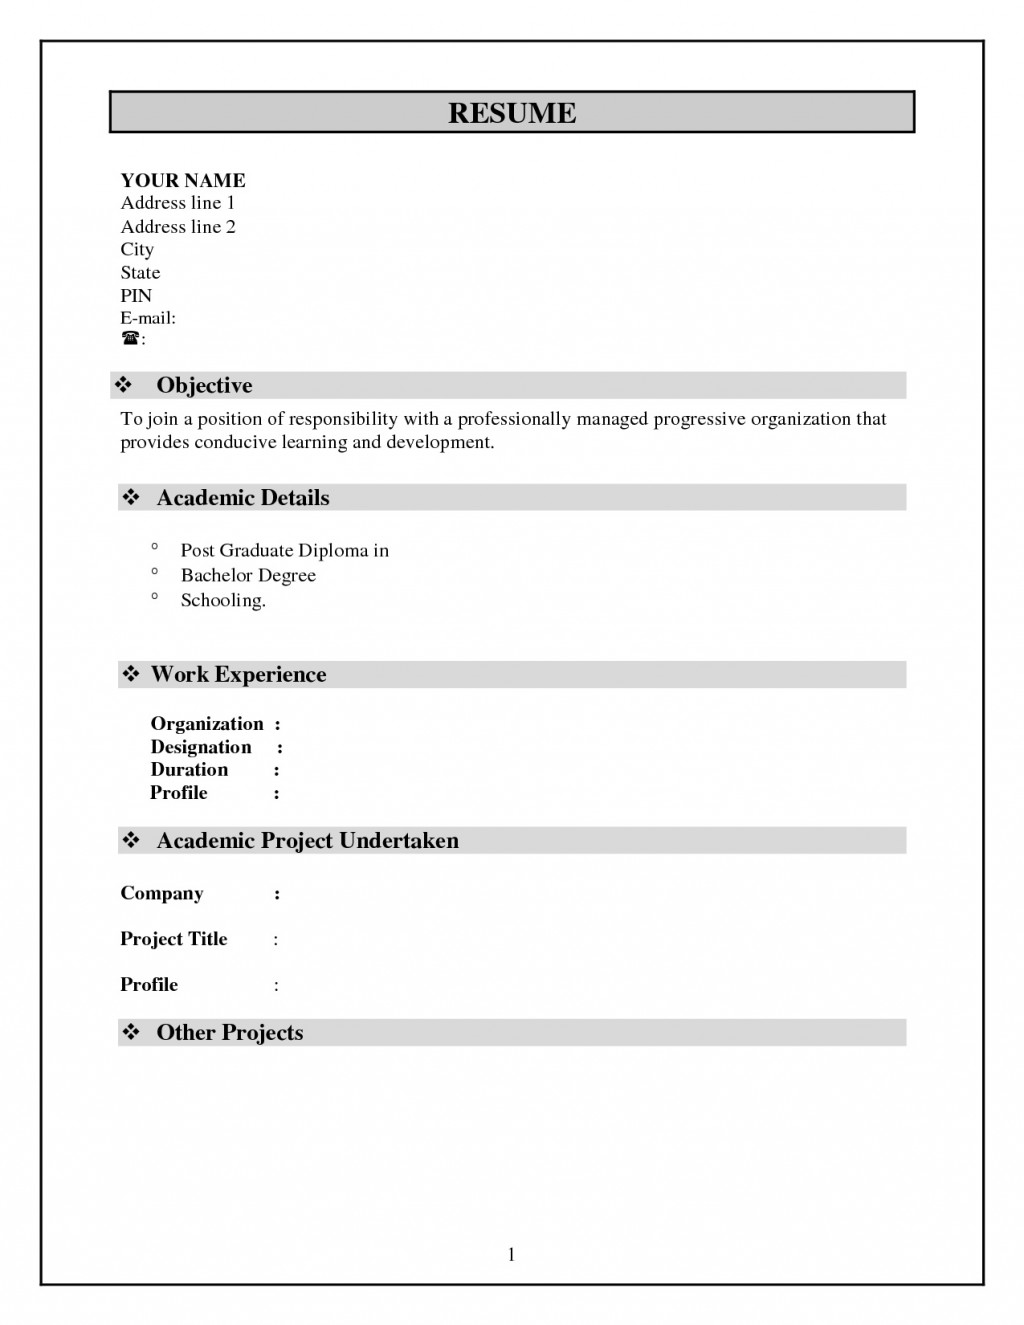 simple resume template free addictionary word ideas match psg credit manager format high Resume Simple Resume Template Free Download Word